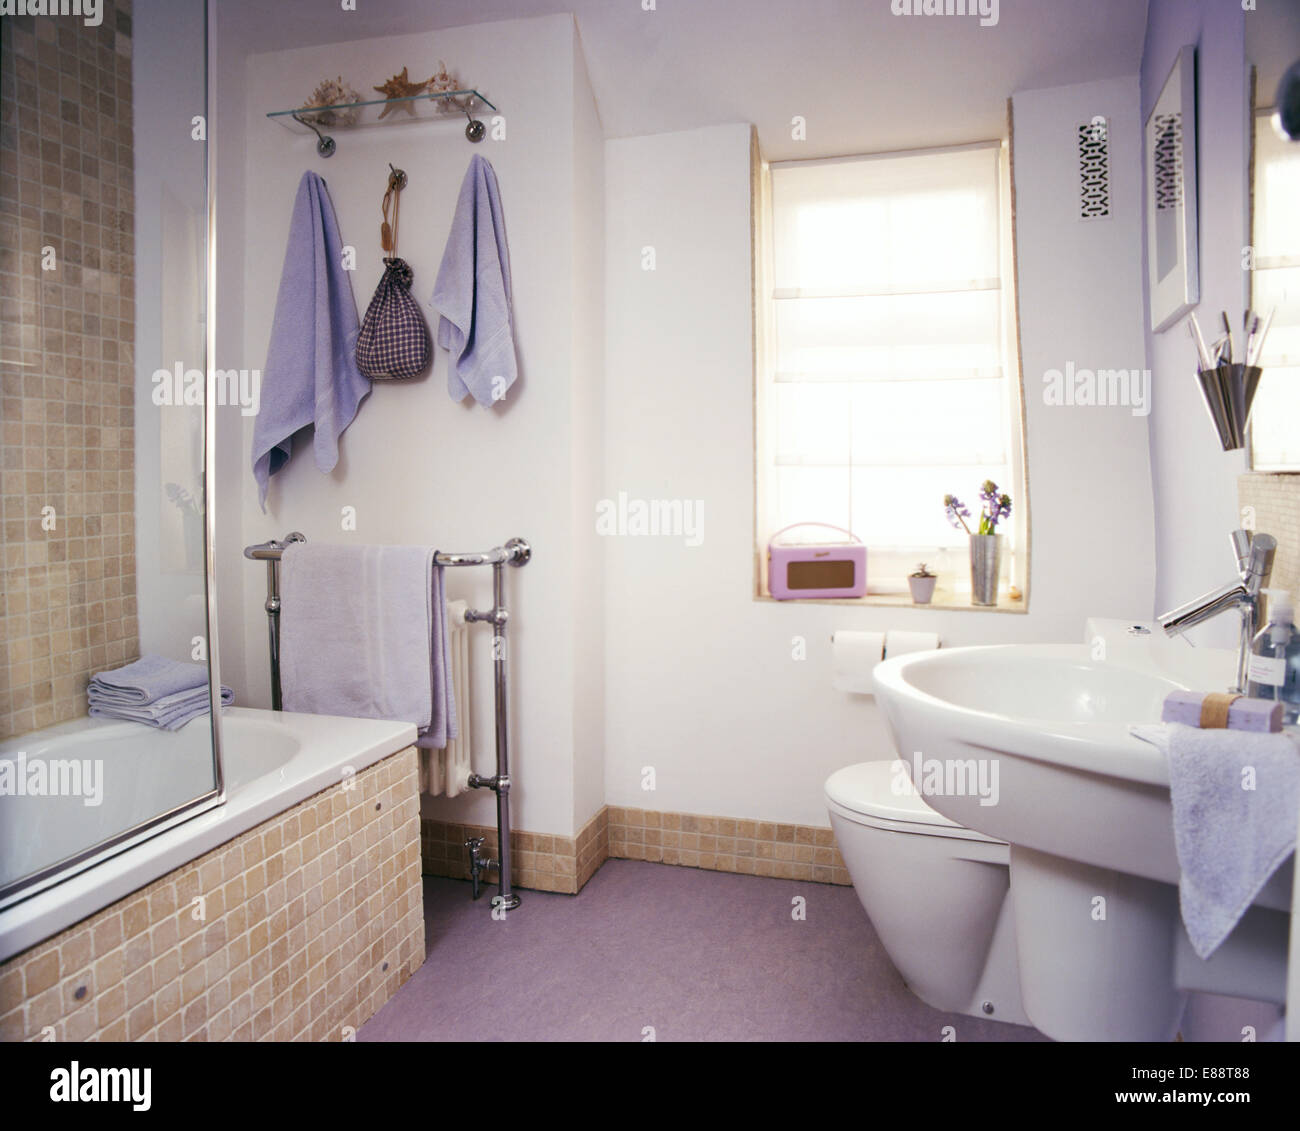 Beige Mosaic Tiled Bath Surround And Skirting Board In Modern Bathroom With  Mauve Towels And Pink Roberts Radio